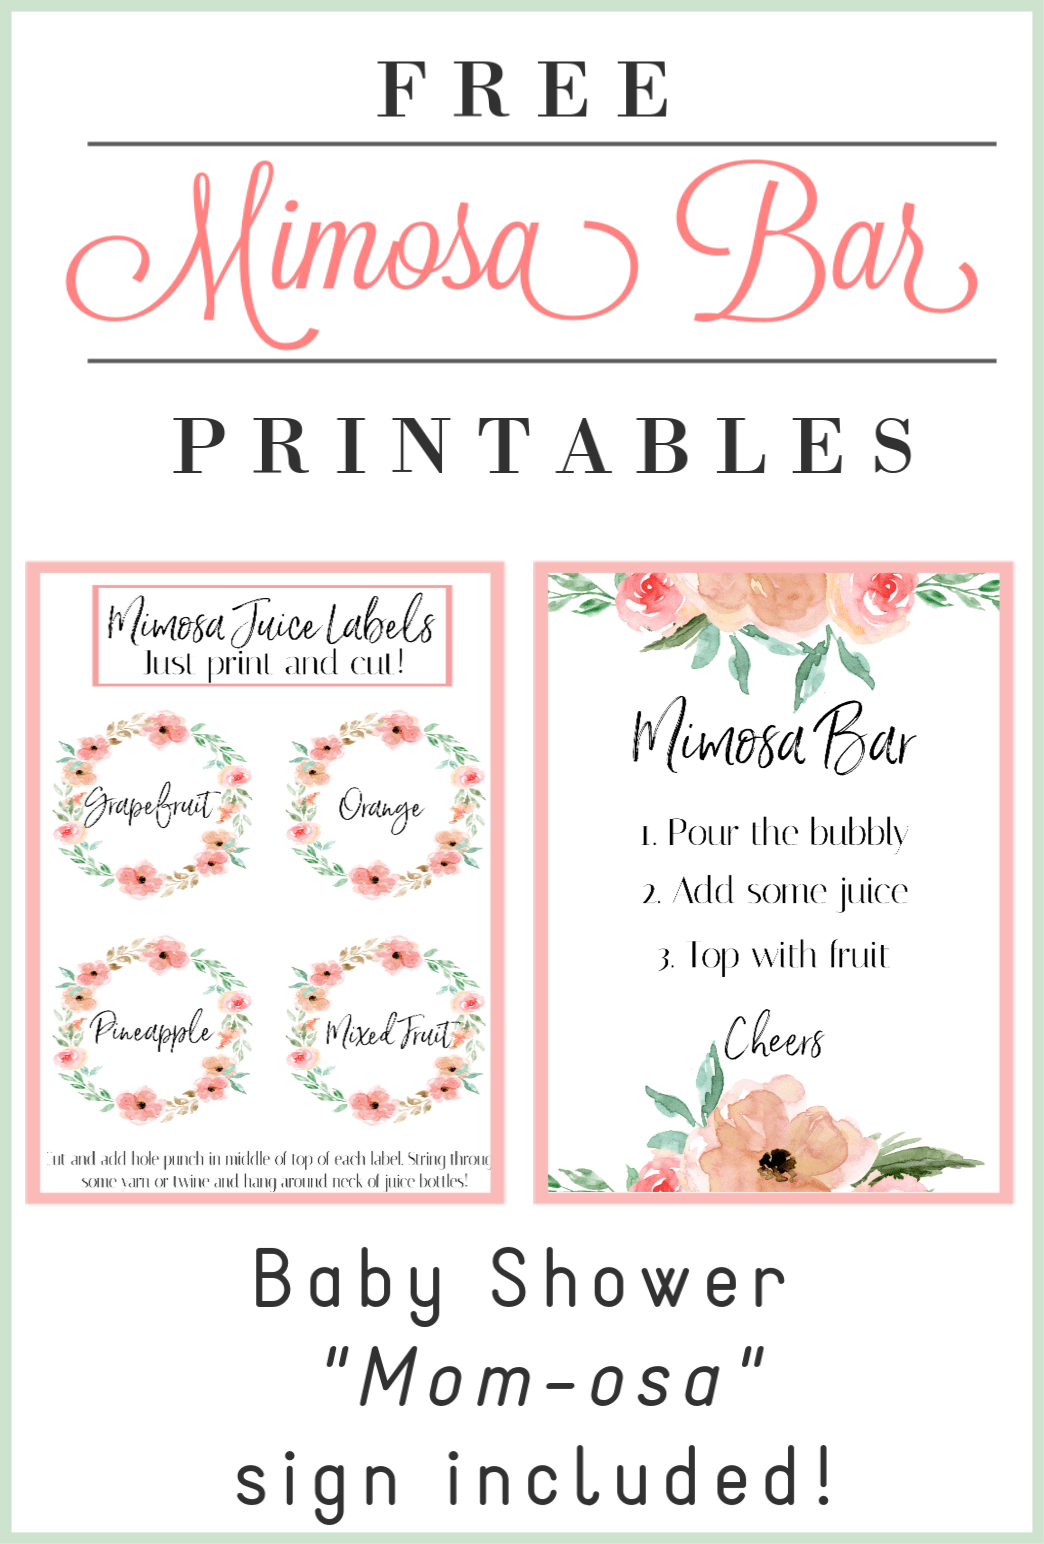 photo relating to Mimosa Bar Sign Printable Free called Do it yourself: Mimosa Bar with Absolutely free Printables! - Alysea Vega